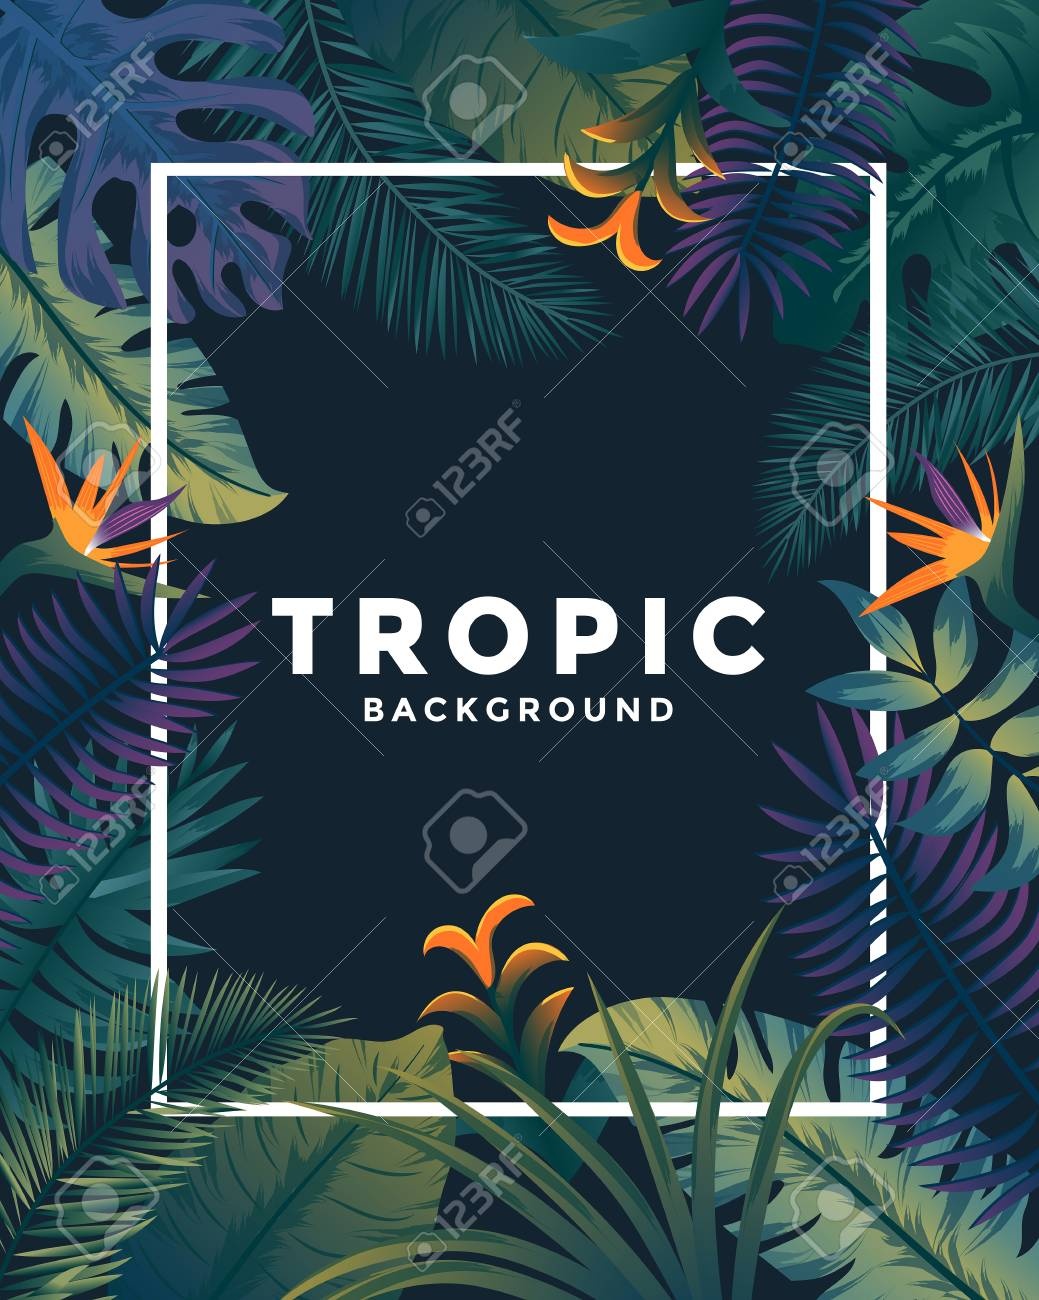 Tropical Background With Jungle Plants Frame With Tropic Leaves 1039x1300